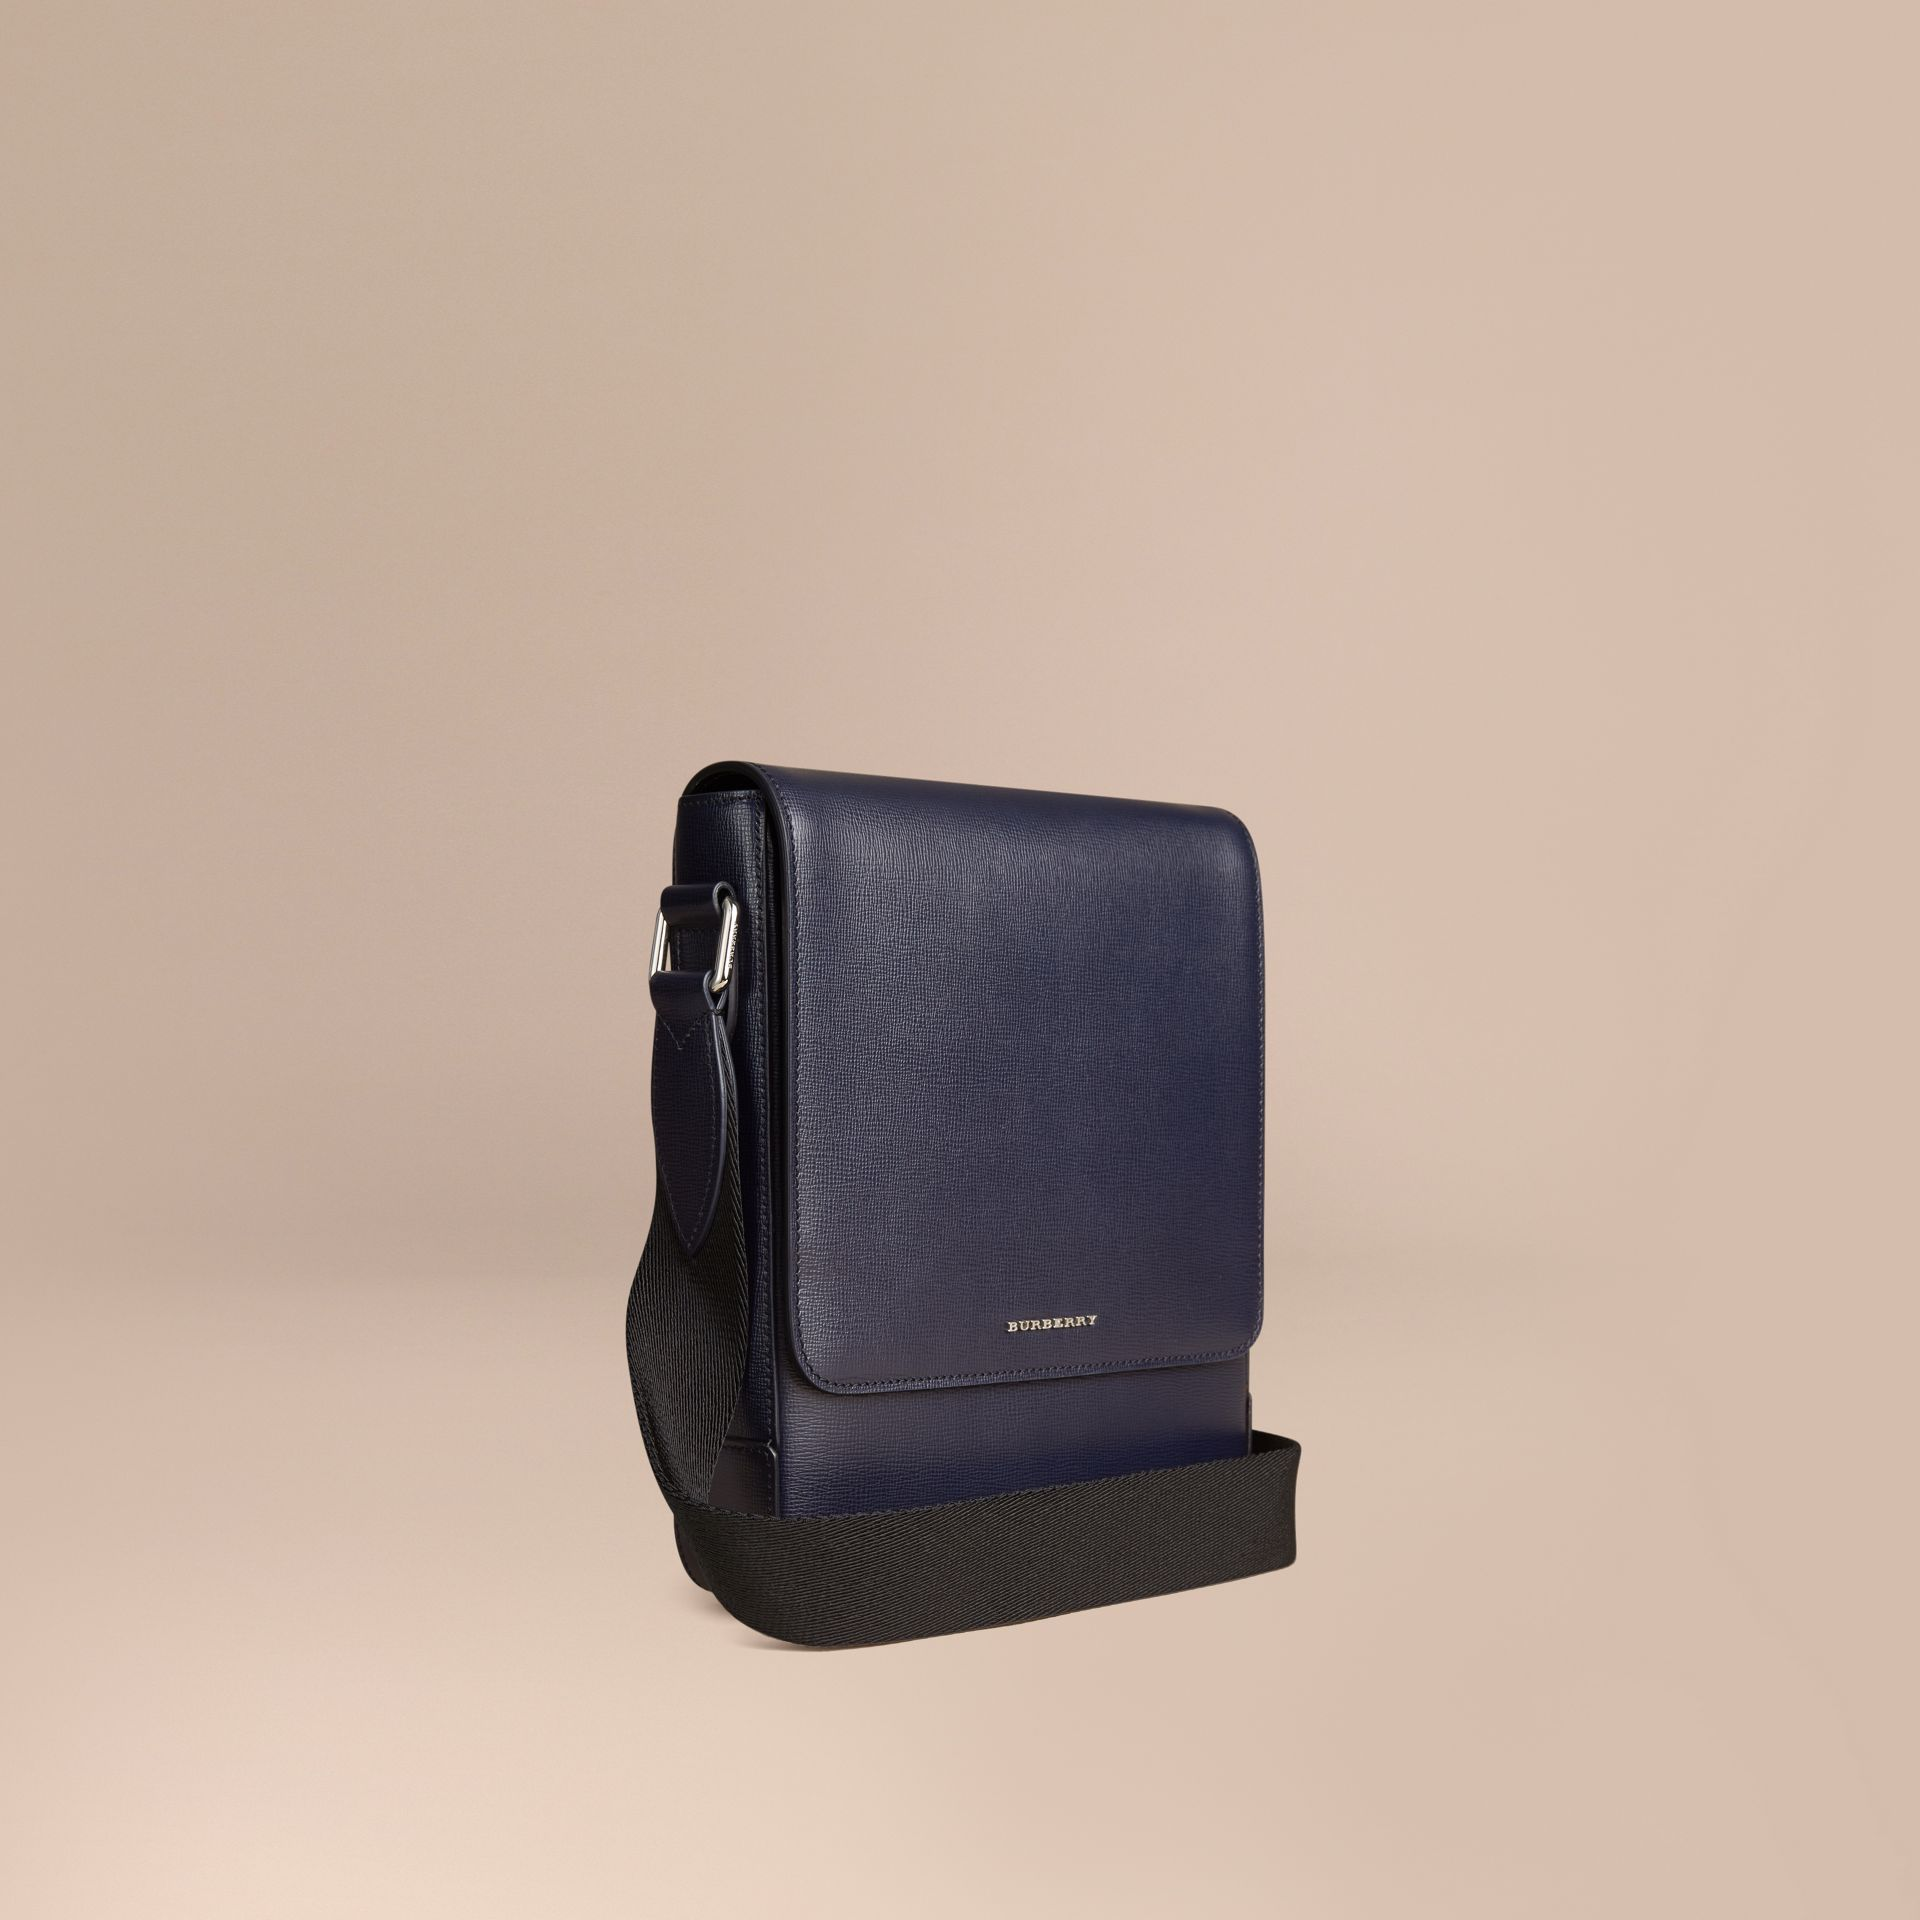 Navy scuro Borsa a tracolla in pelle London Navy Scuro - immagine della galleria 1